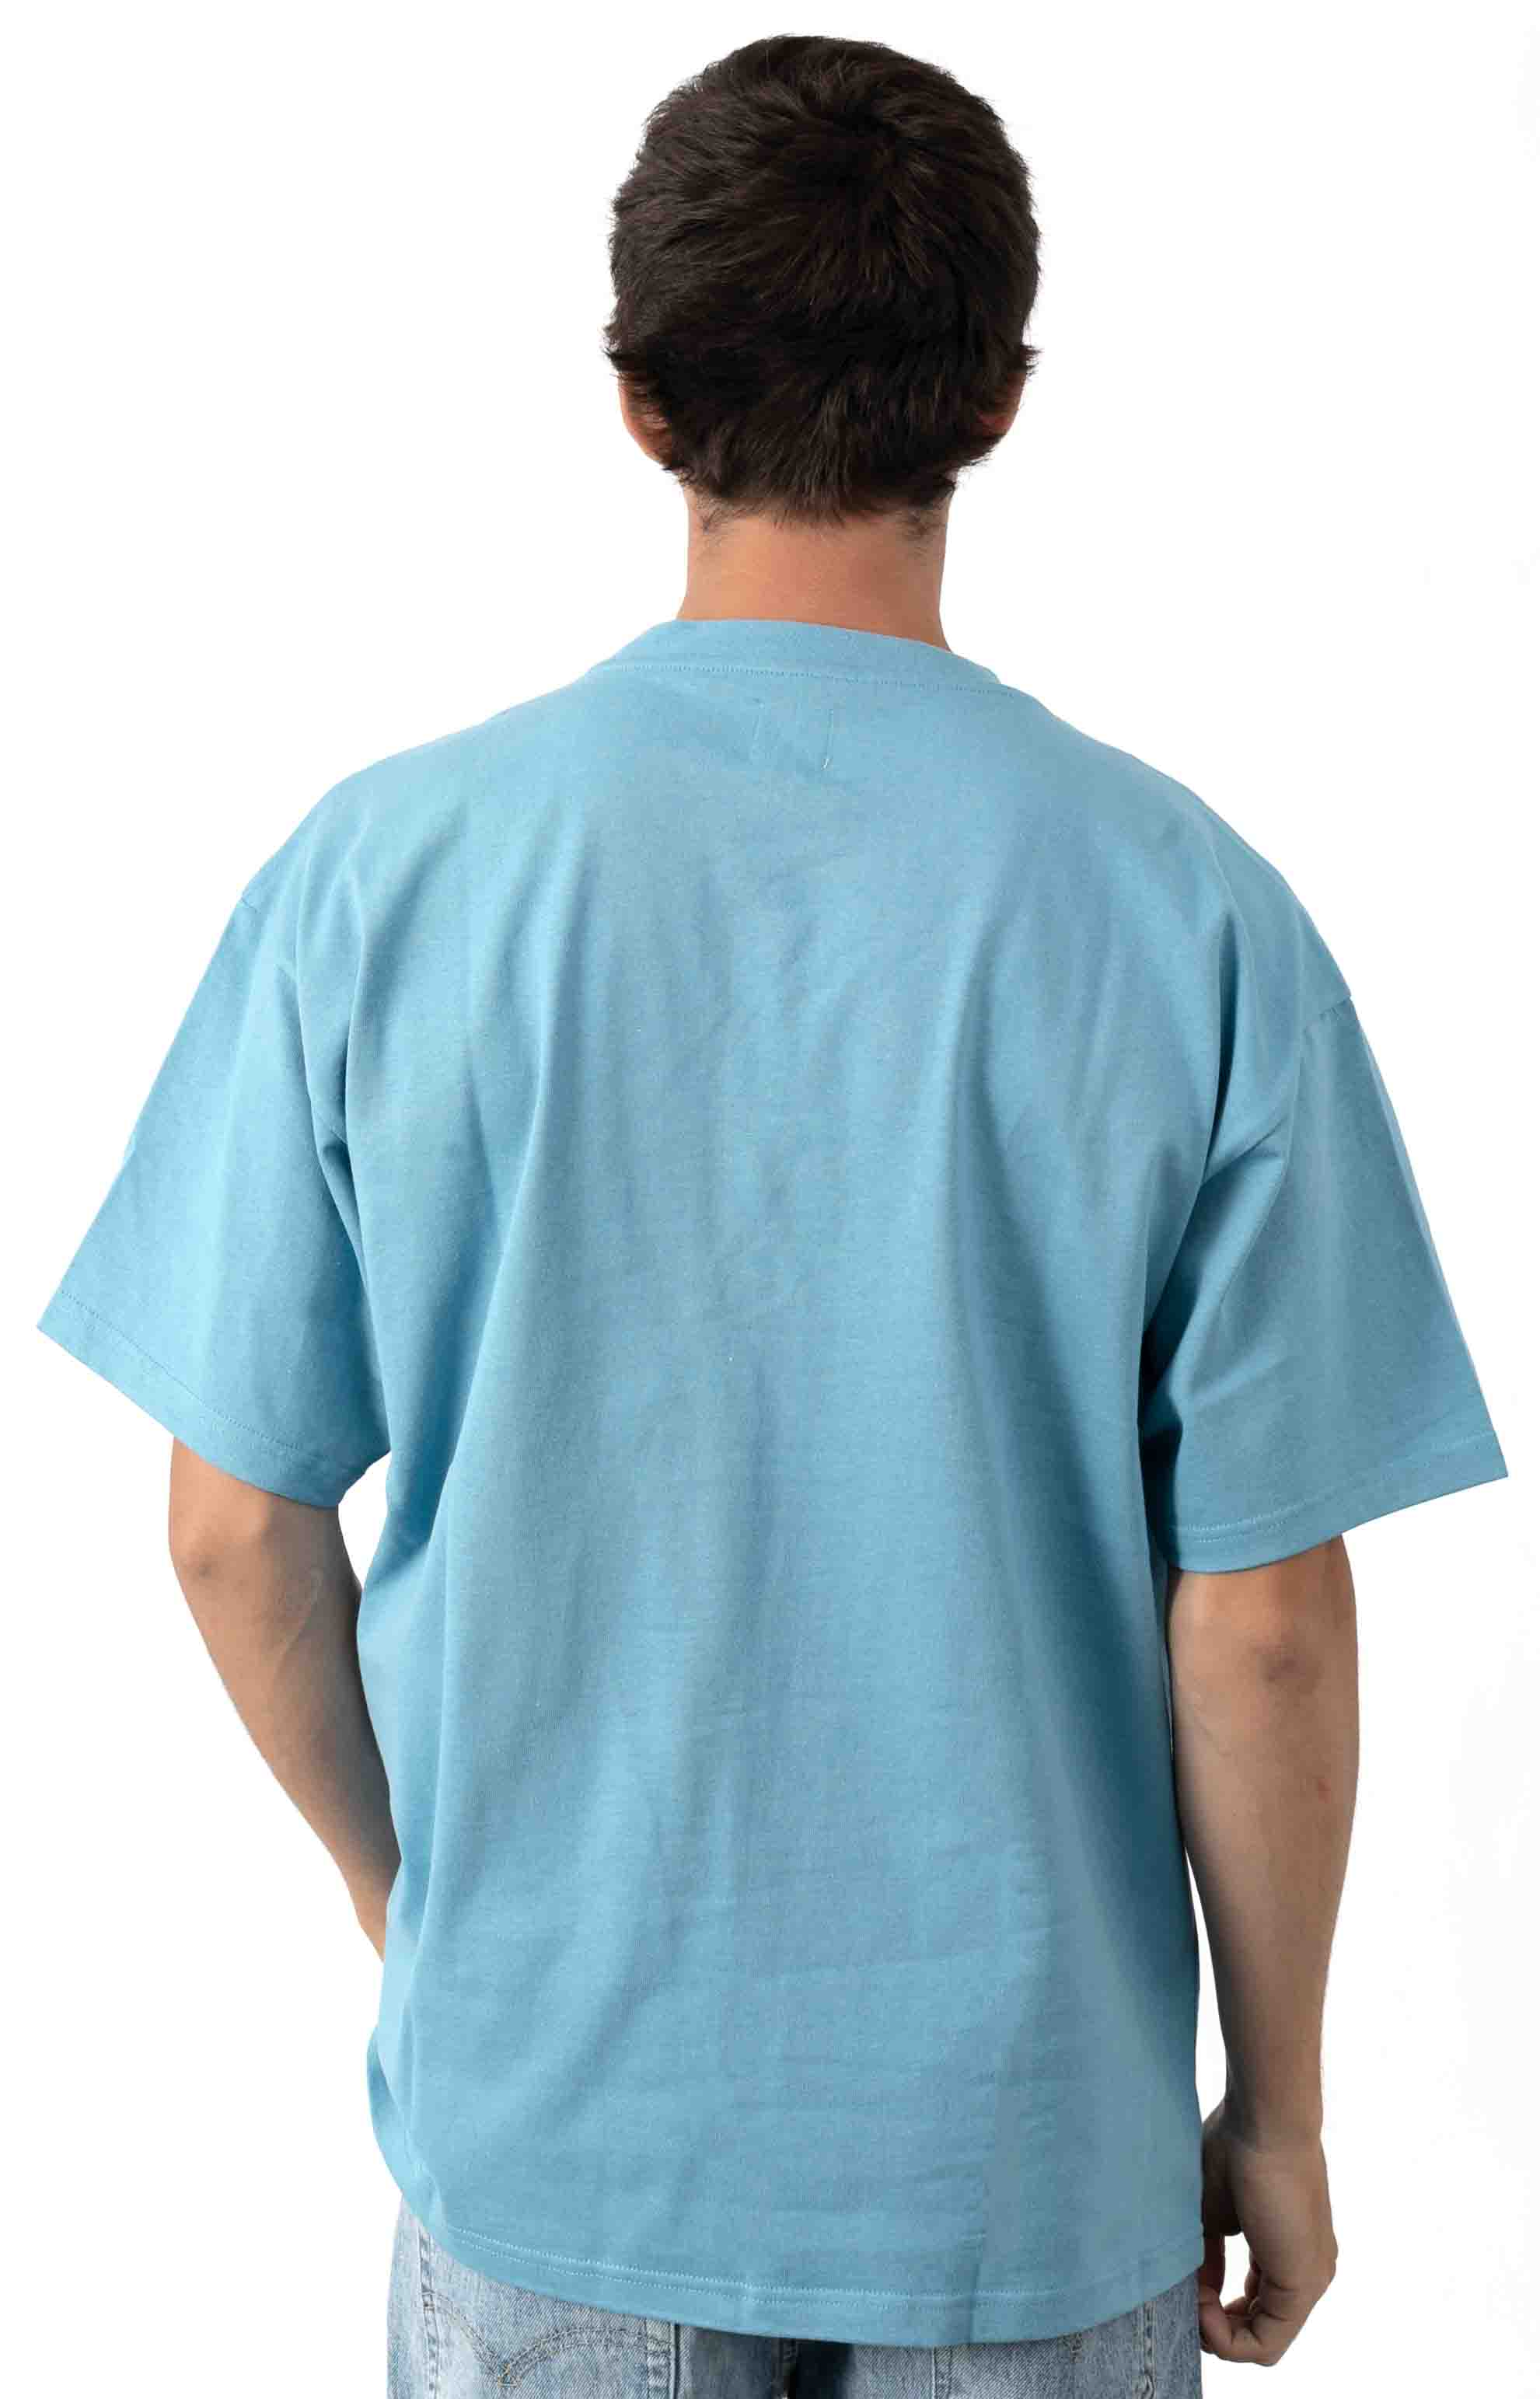 Pocket T-Shirt - Blue 3